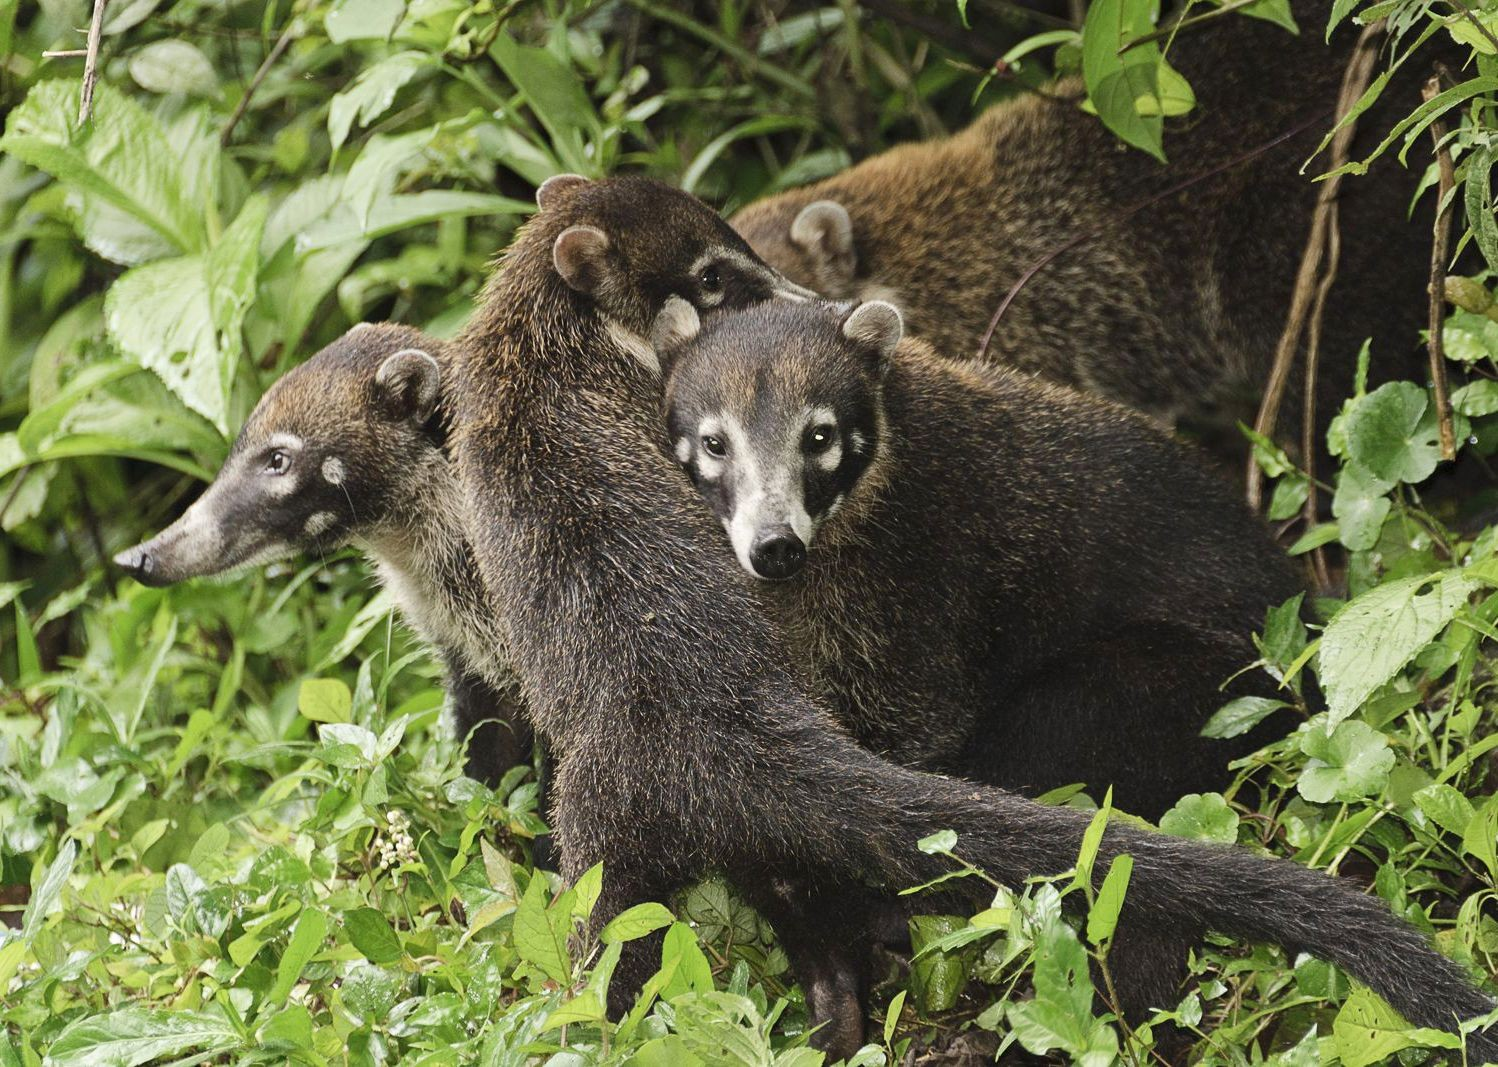 coati-wildlife-costa-rica-family-holiday.jpg - Costa Rica - Volcanoes and Valleys - Guided Family Cycling Holiday - Family Cycling